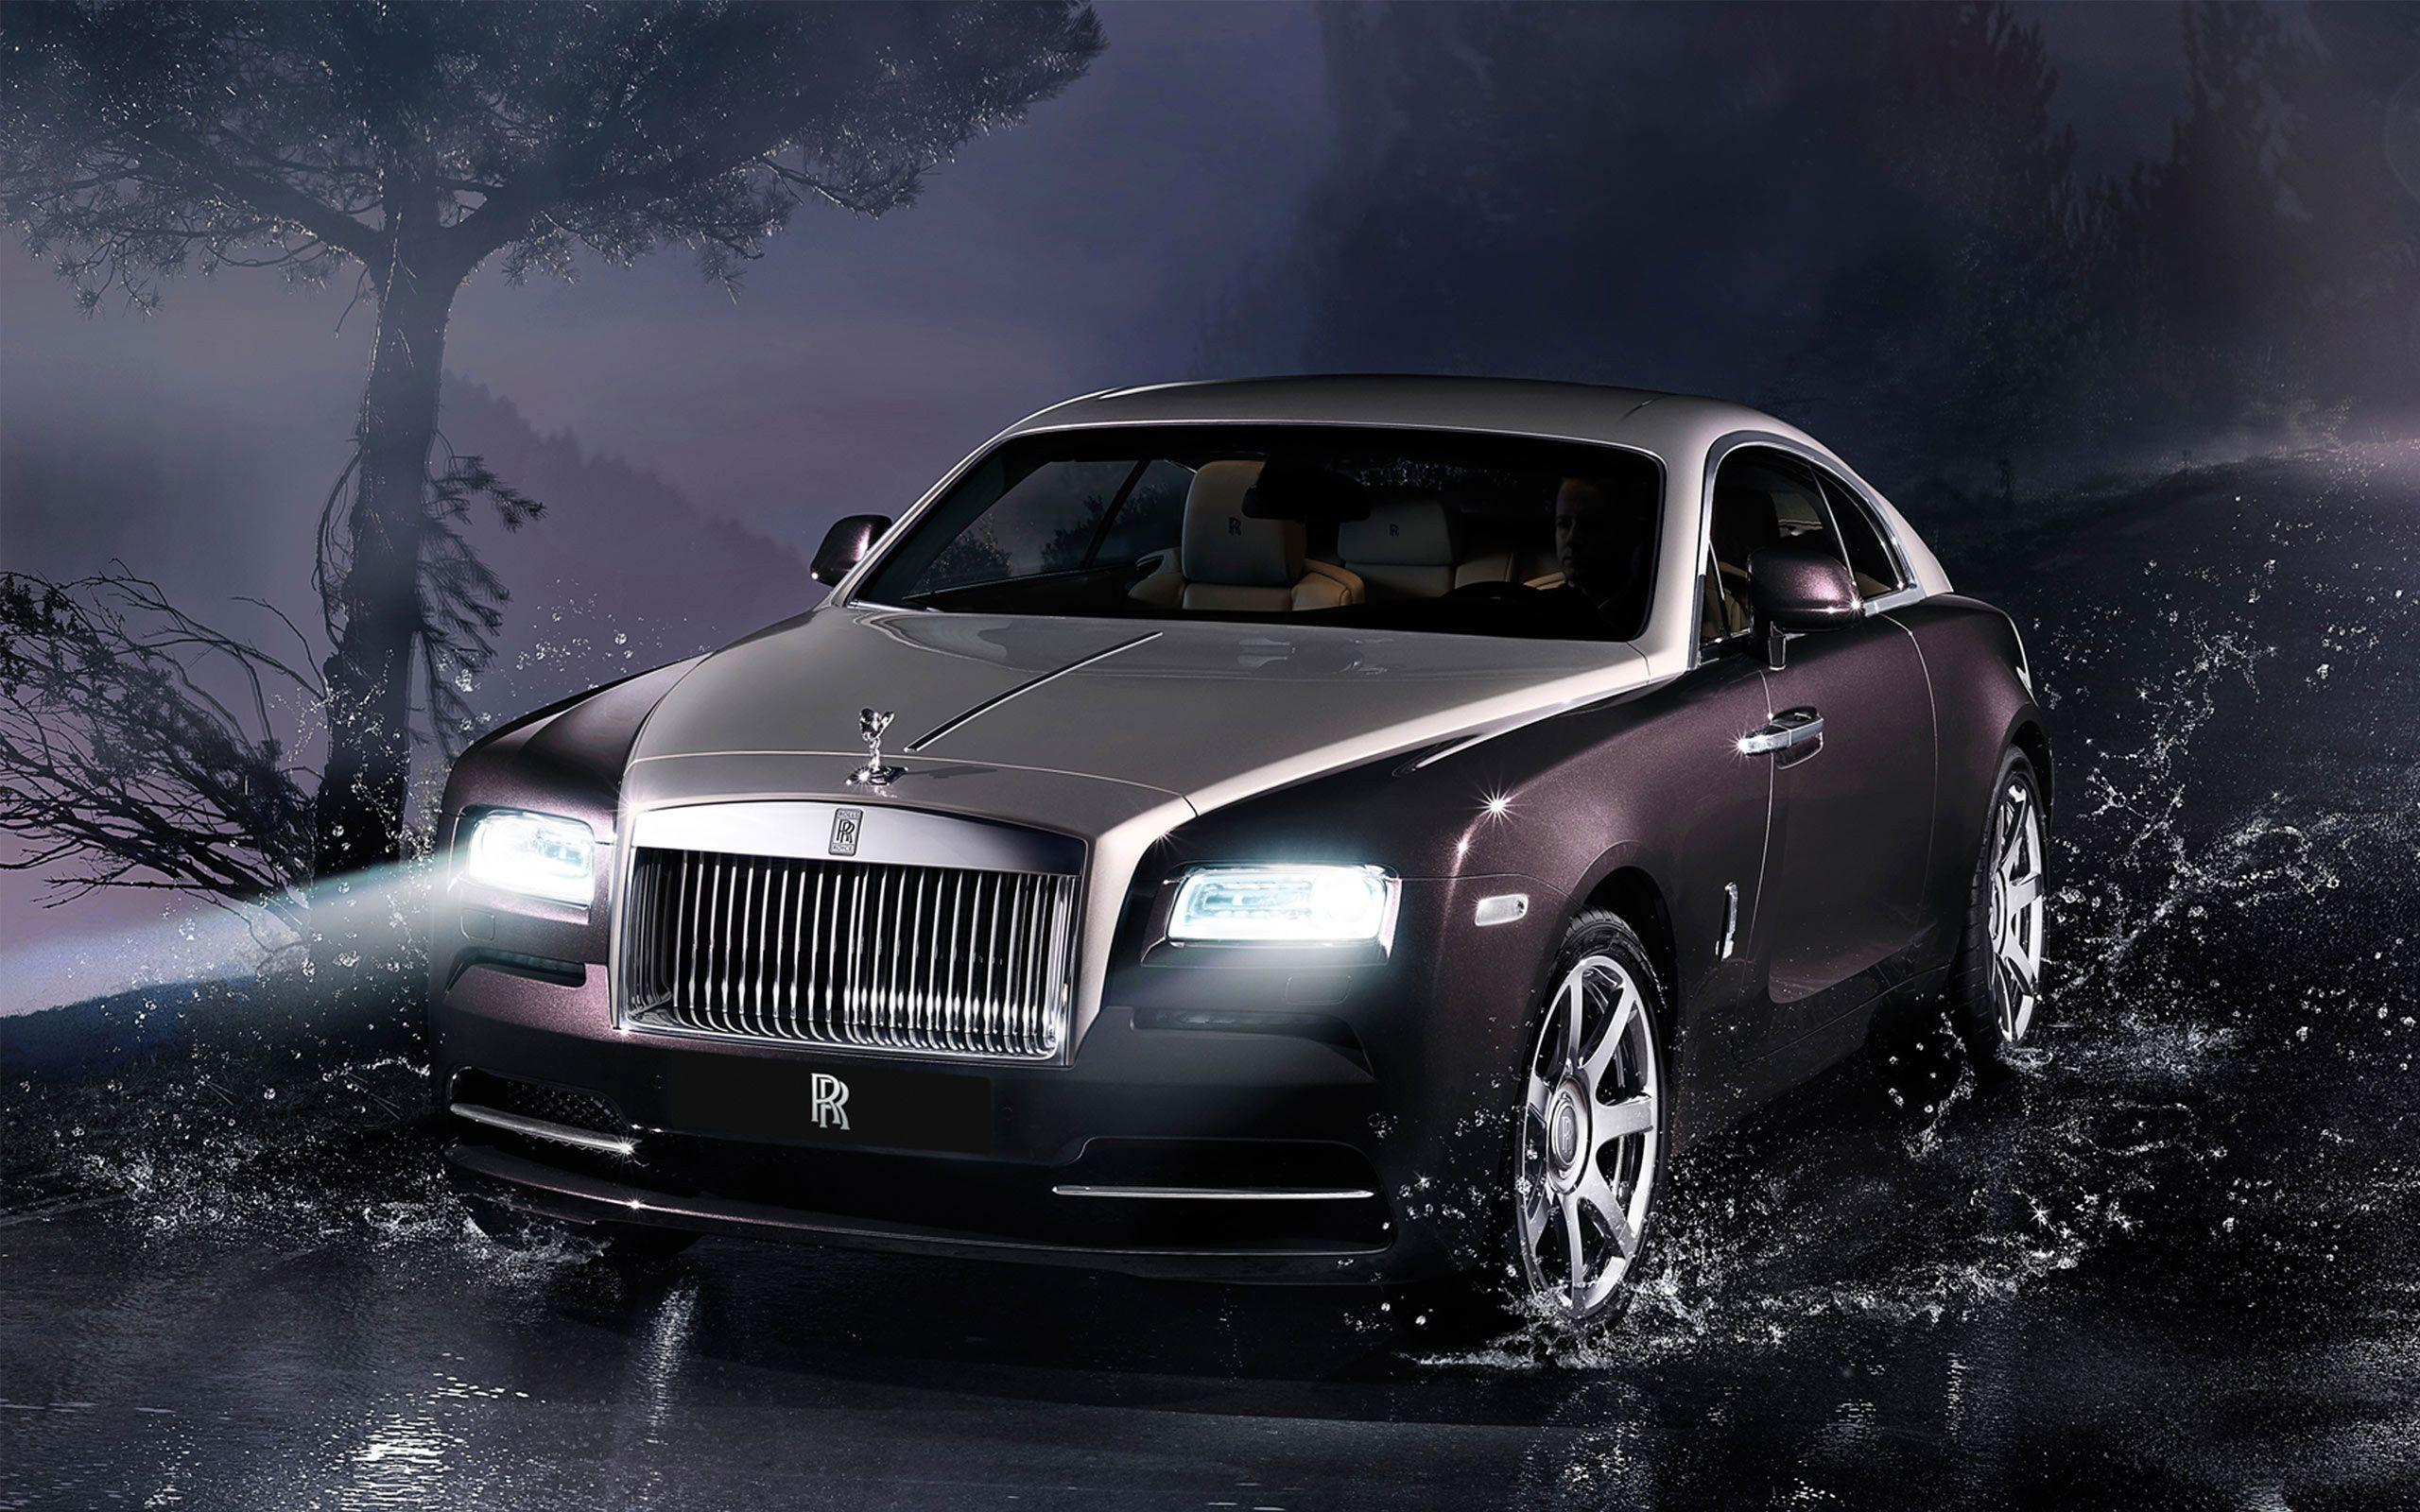 Rolls Royce Wraith 2014 Wallpapers